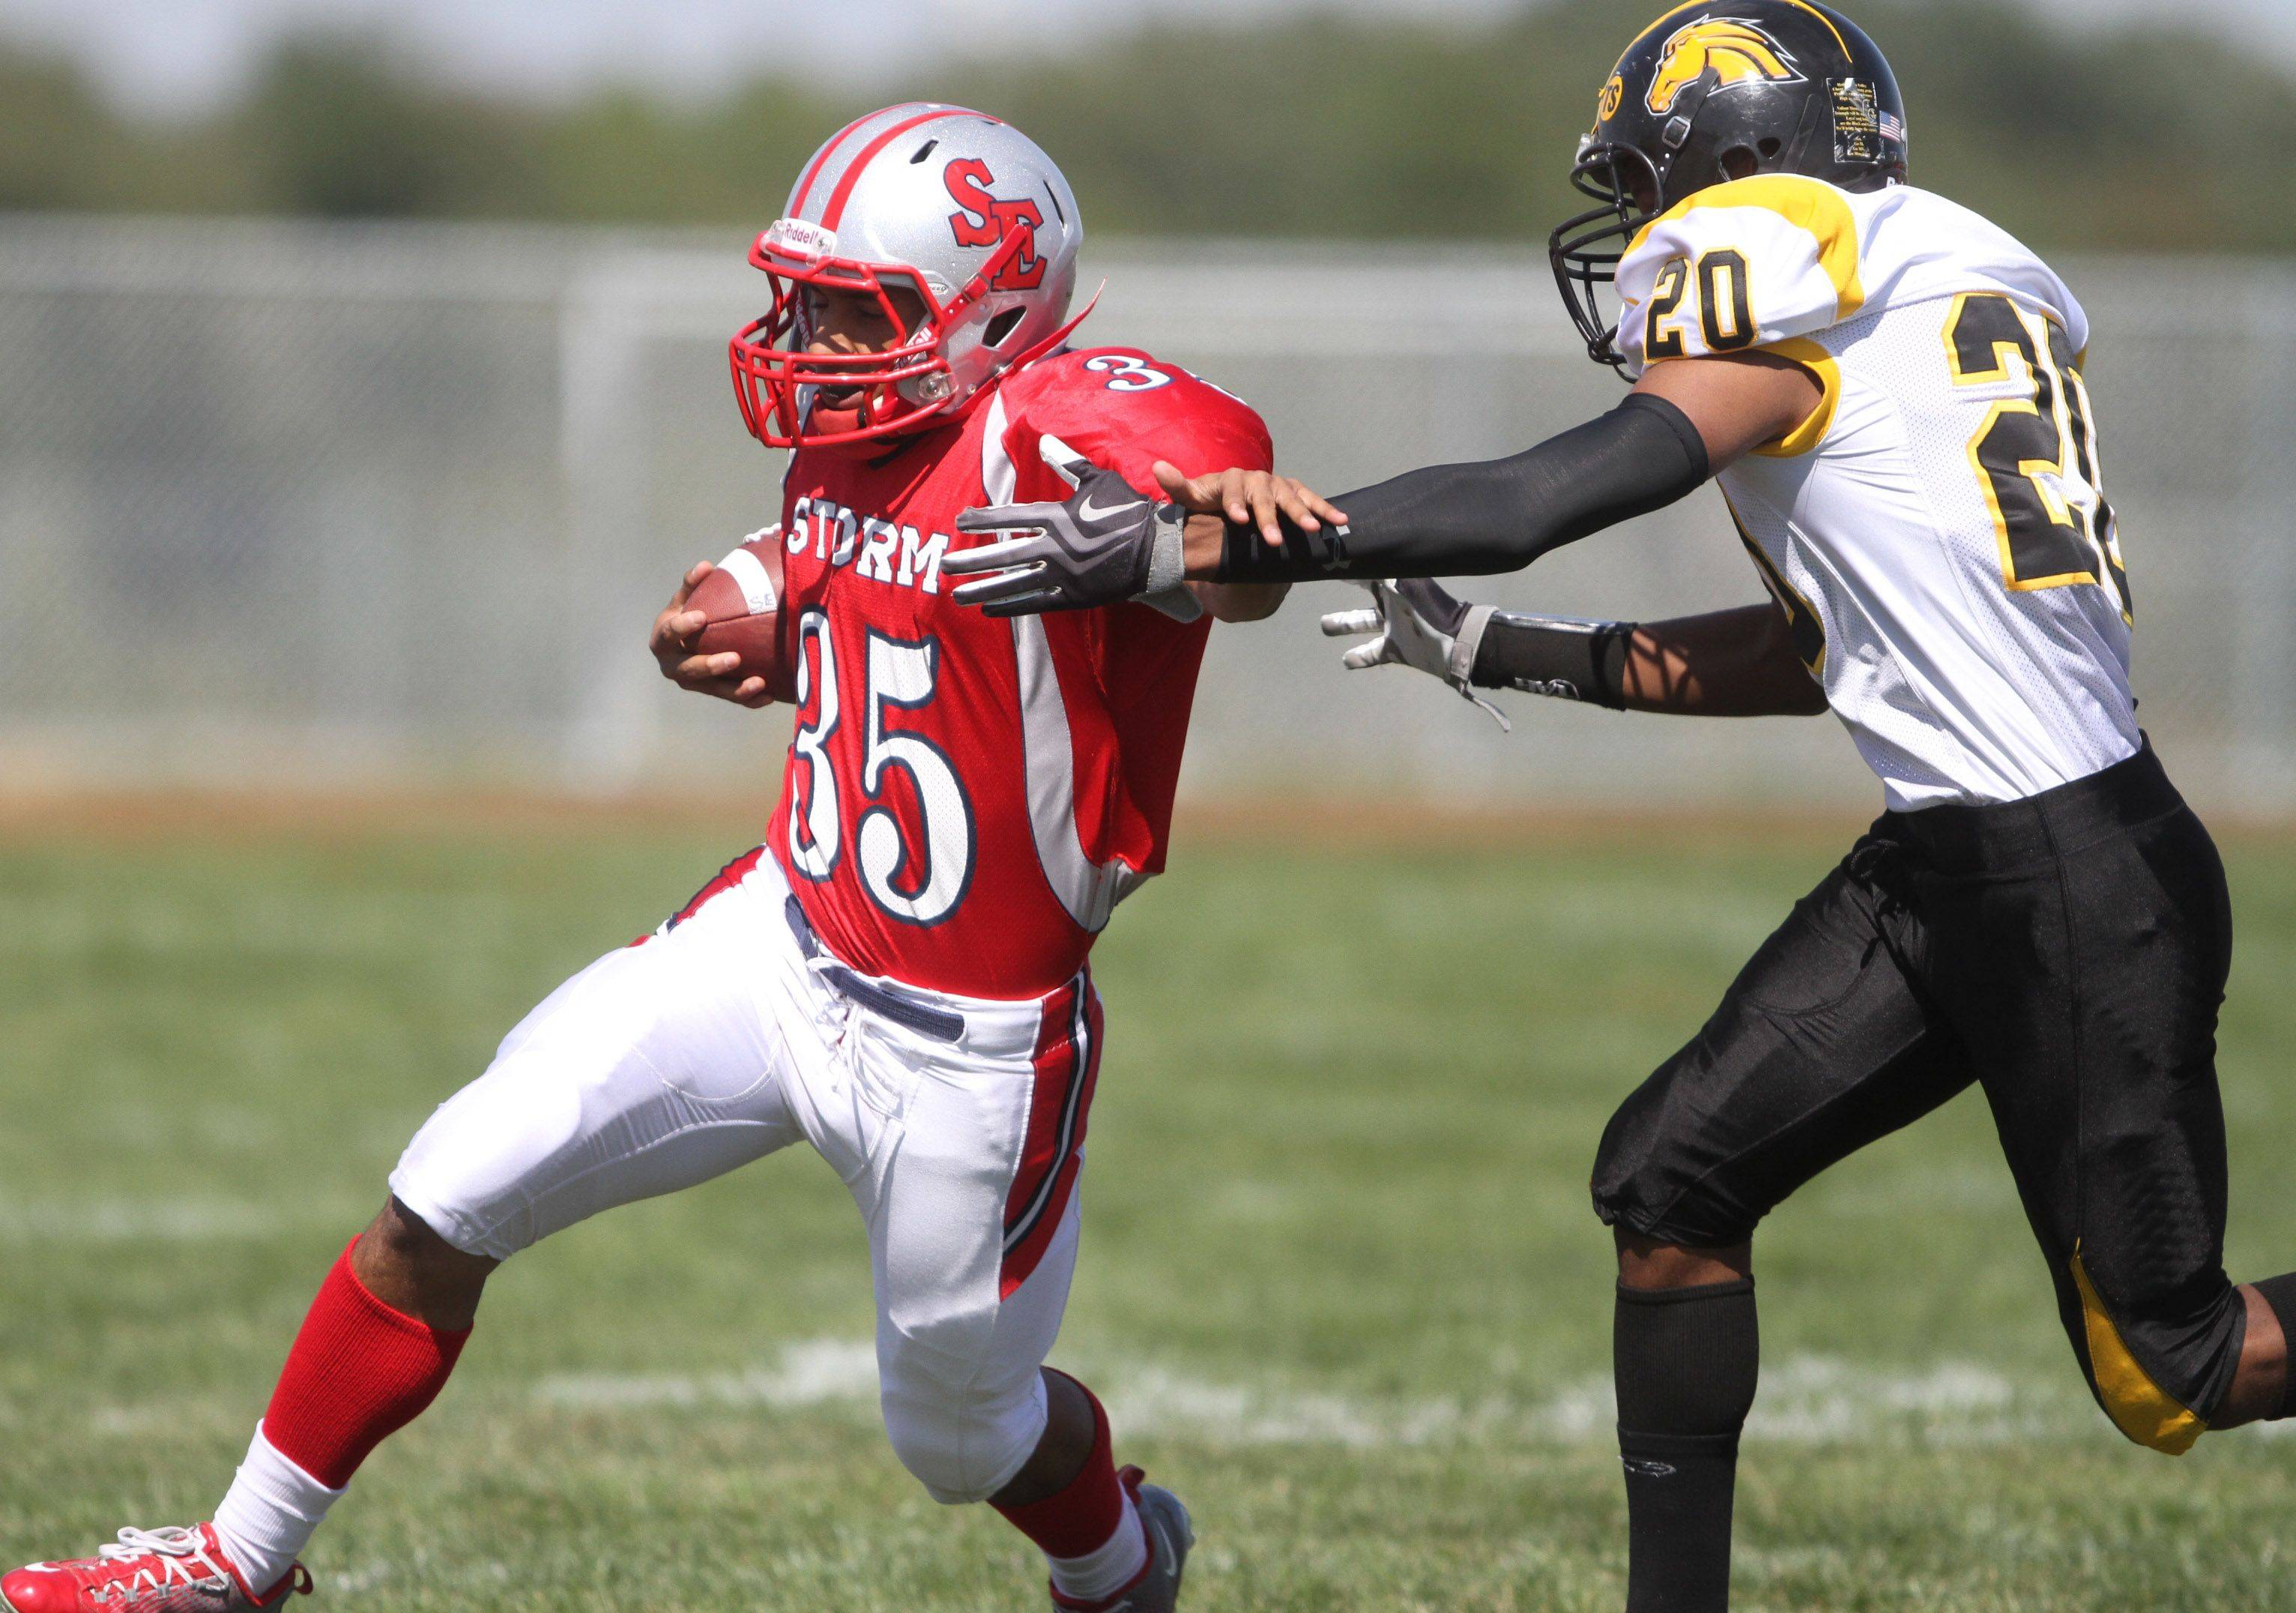 South Elgin's Adolfo Pacheco brushes off Metea Valley defender Breon Hossier at South Elgin Saturday.